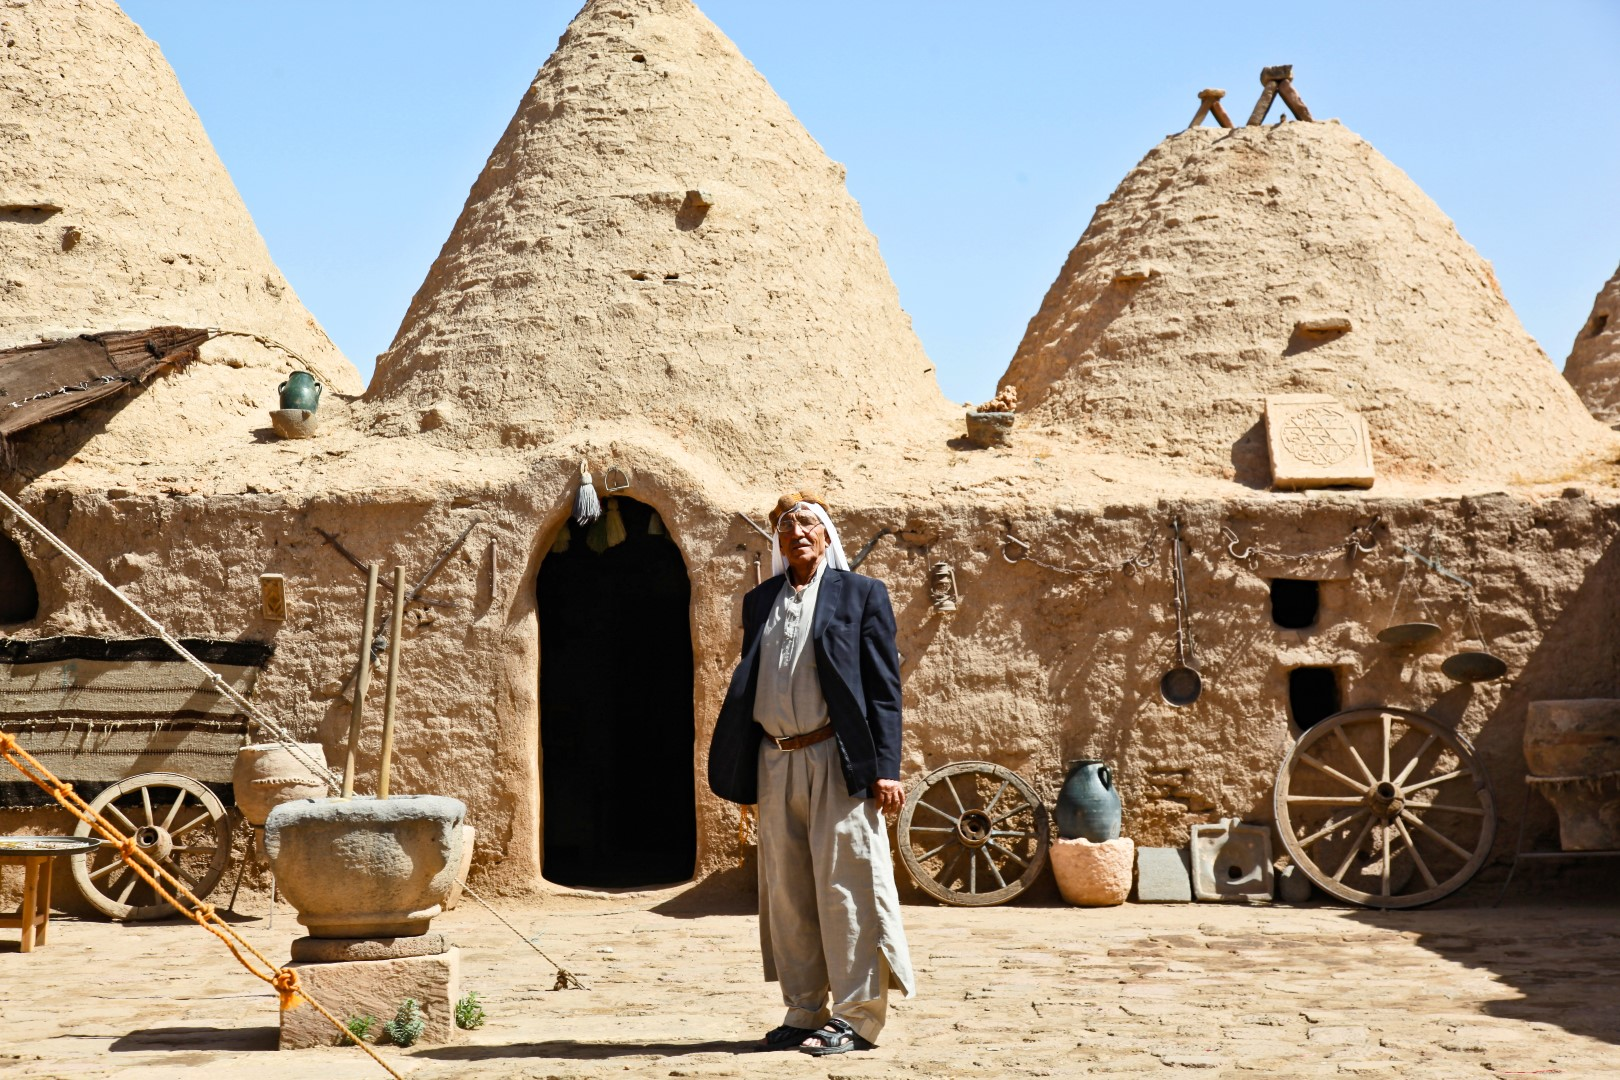 I0000dVY mNHuIIs in addition Pinter Lustings Ethnic Style furthermore Culture Pictures together with Turkey Southeastern Anatolia Region Harran And Ataturk Dam in addition I0000Uxgu wCdkZc. on traditional home photography